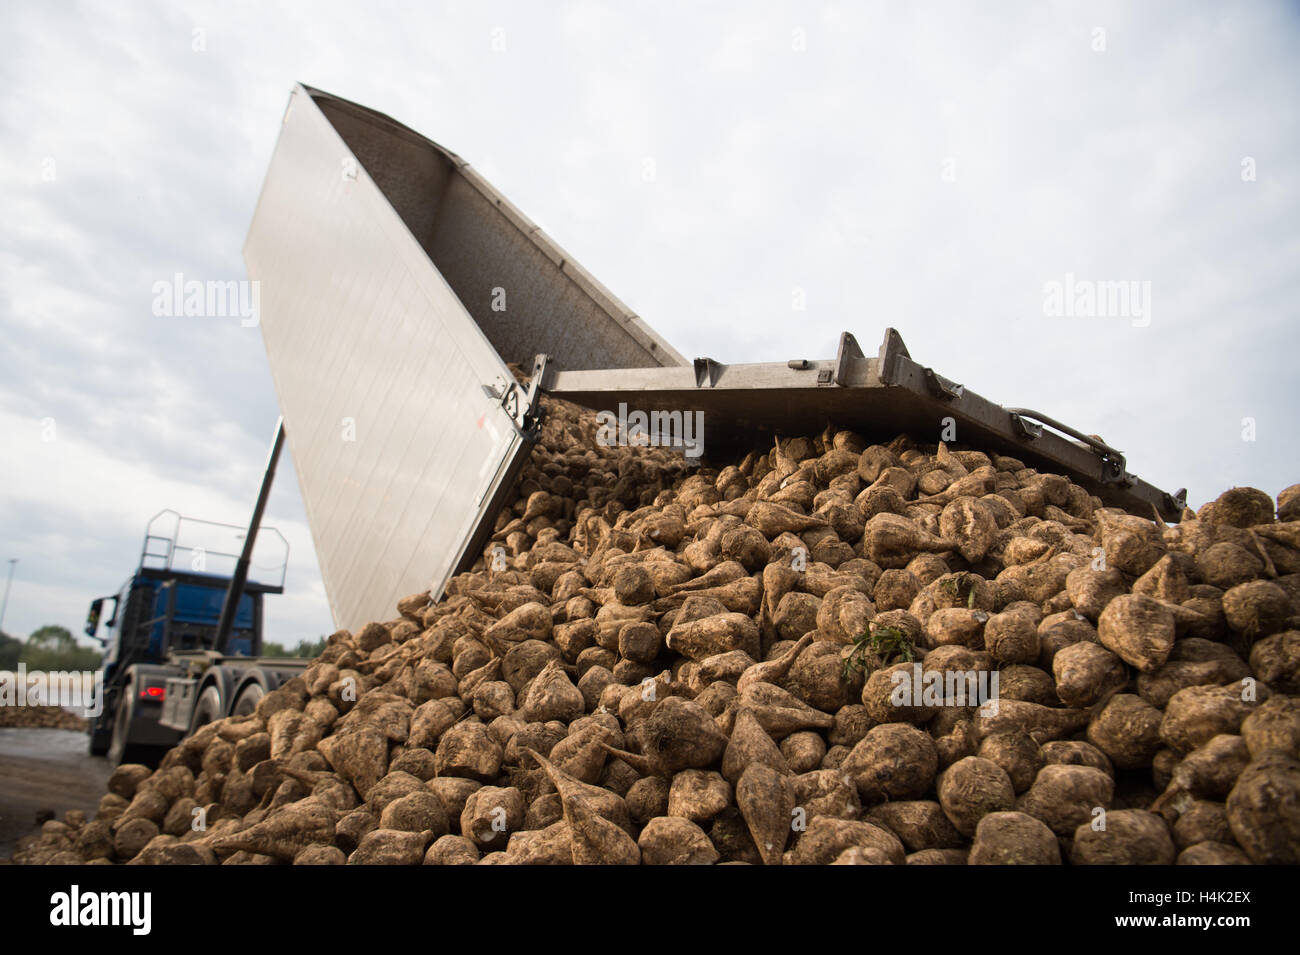 Euskirchen, Germany. 17th Oct, 2016. Sugar beets are moved into a storage location in front of the sugar factory - Stock Image